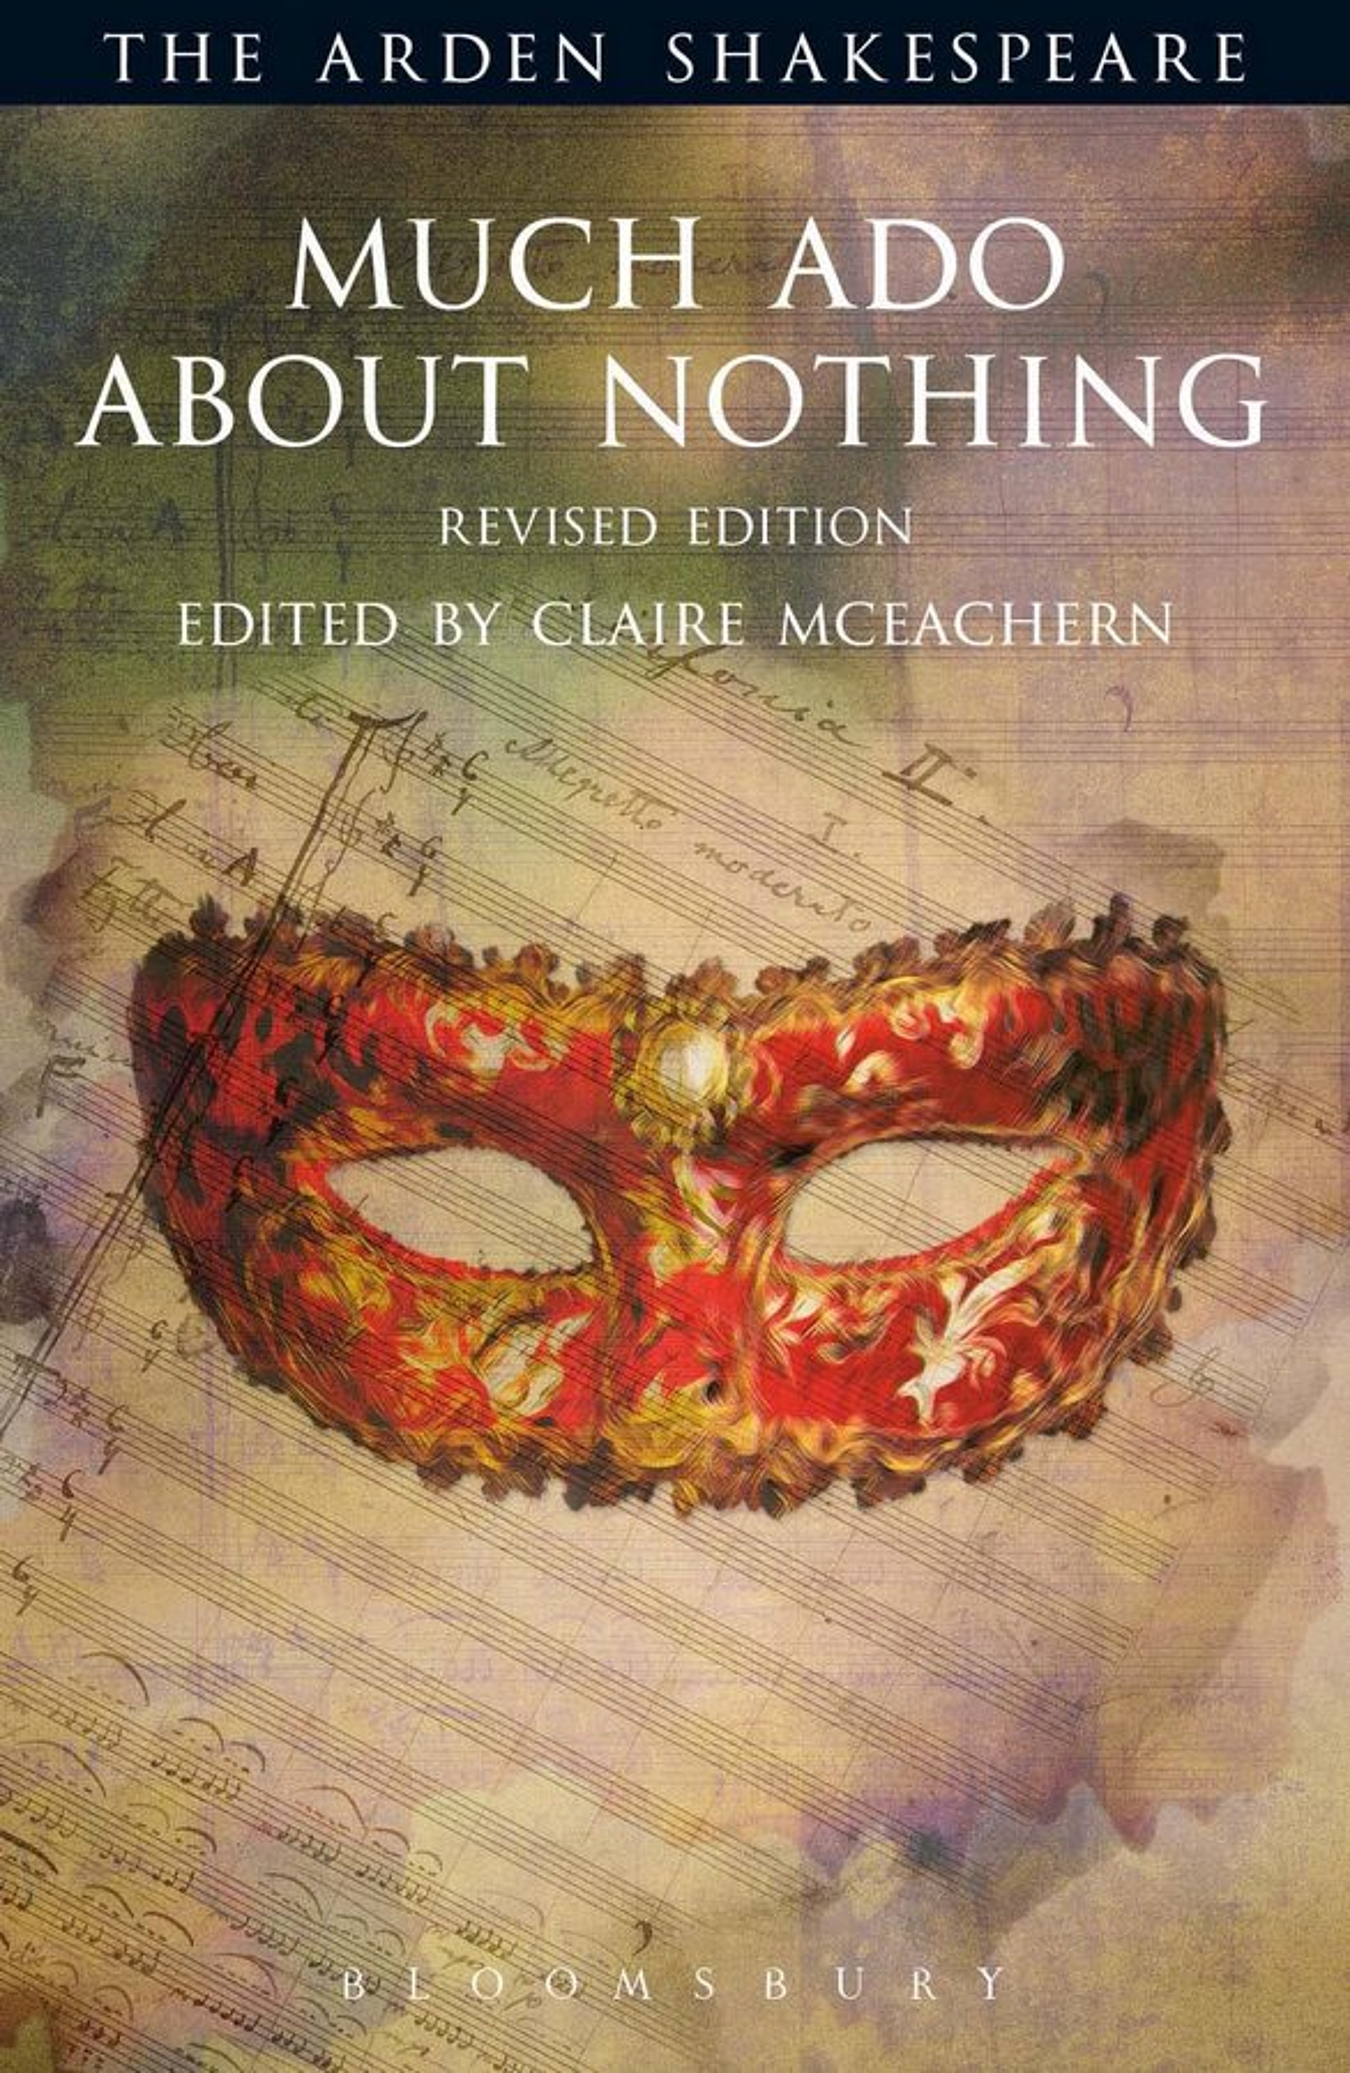 an analysis of the play much ado about nothing written by william shakespeare in the 1600s Much ado act 3 scene 2 william shakespeare written by william shakespeare much ado about nothing (characters of the play.